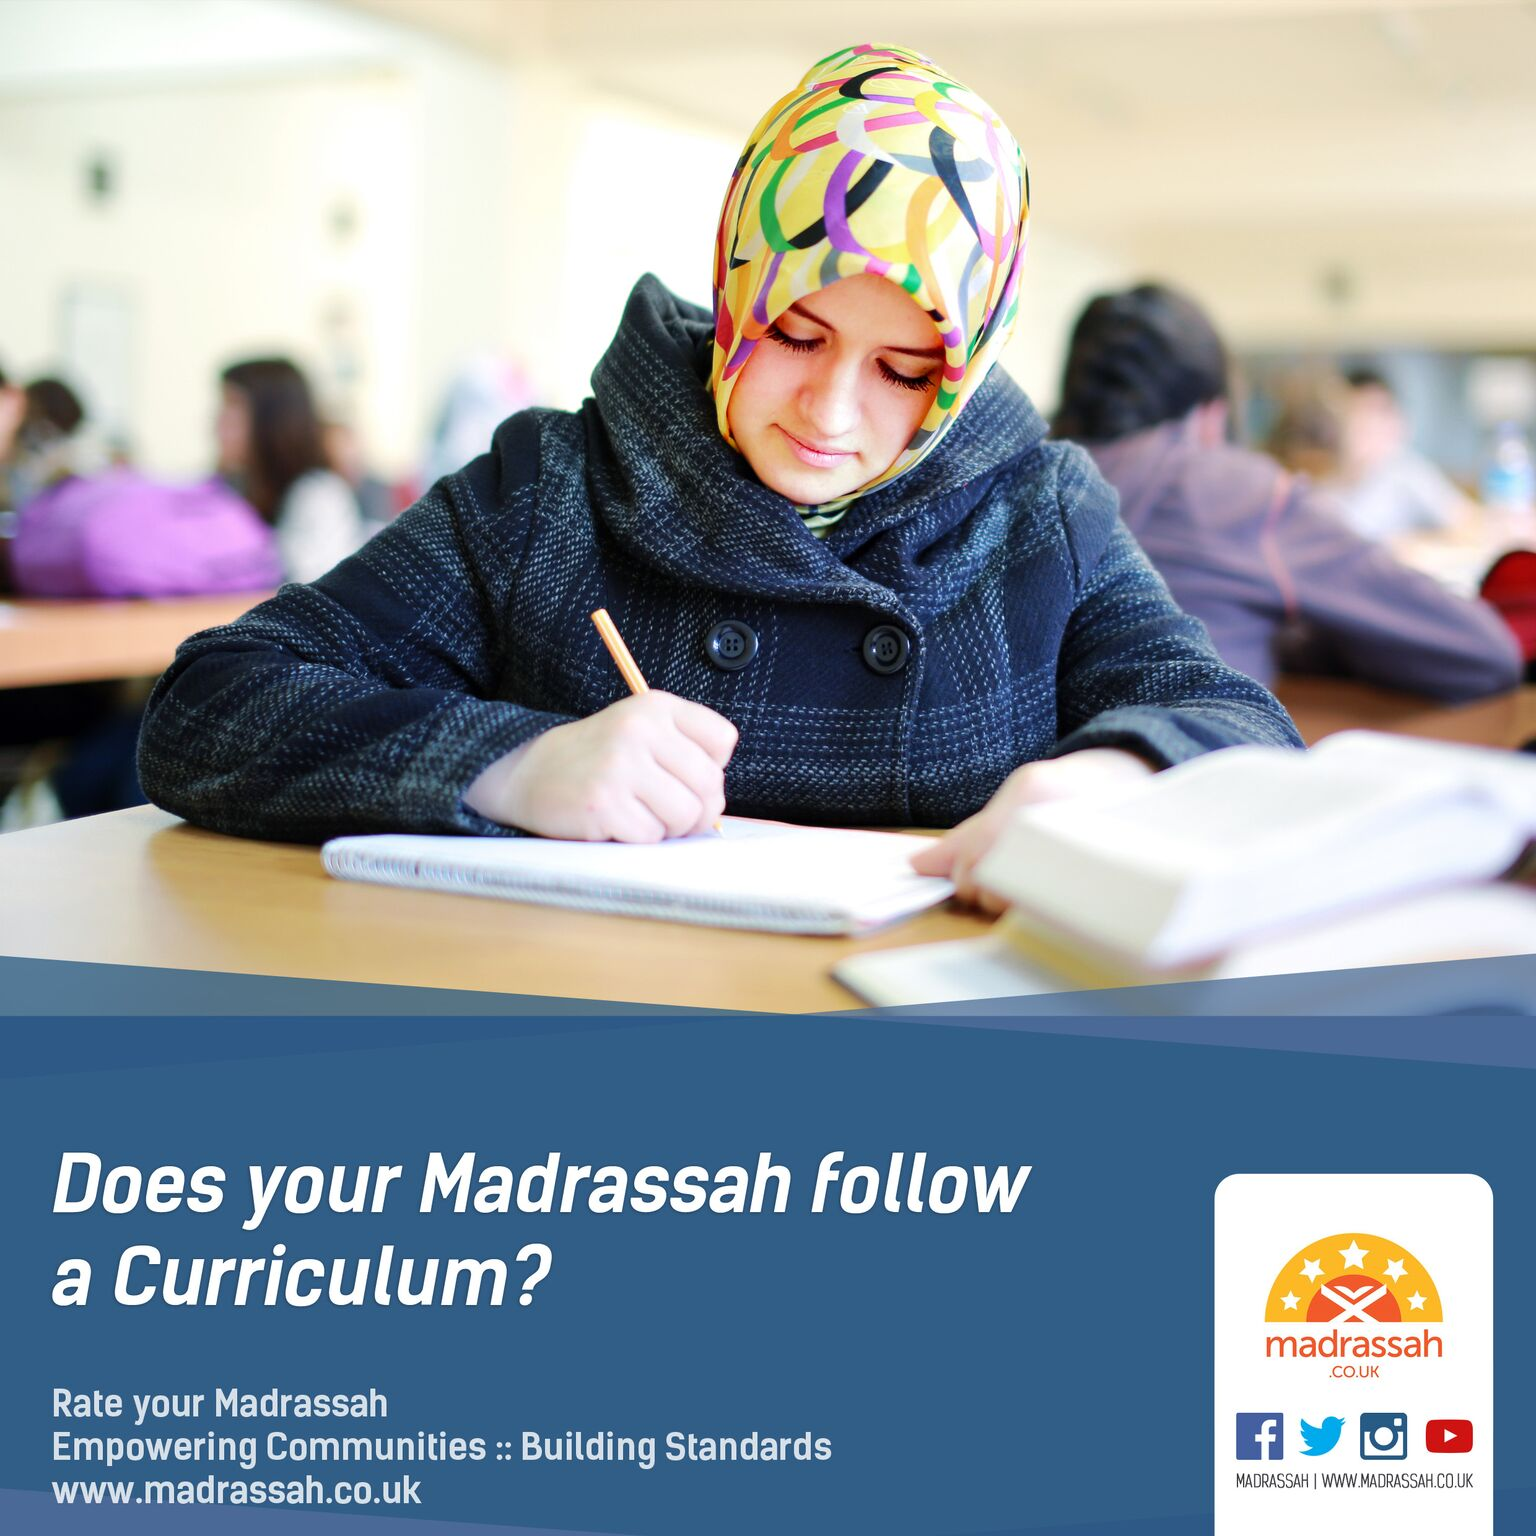 Does your Madrassah follow a curriculum